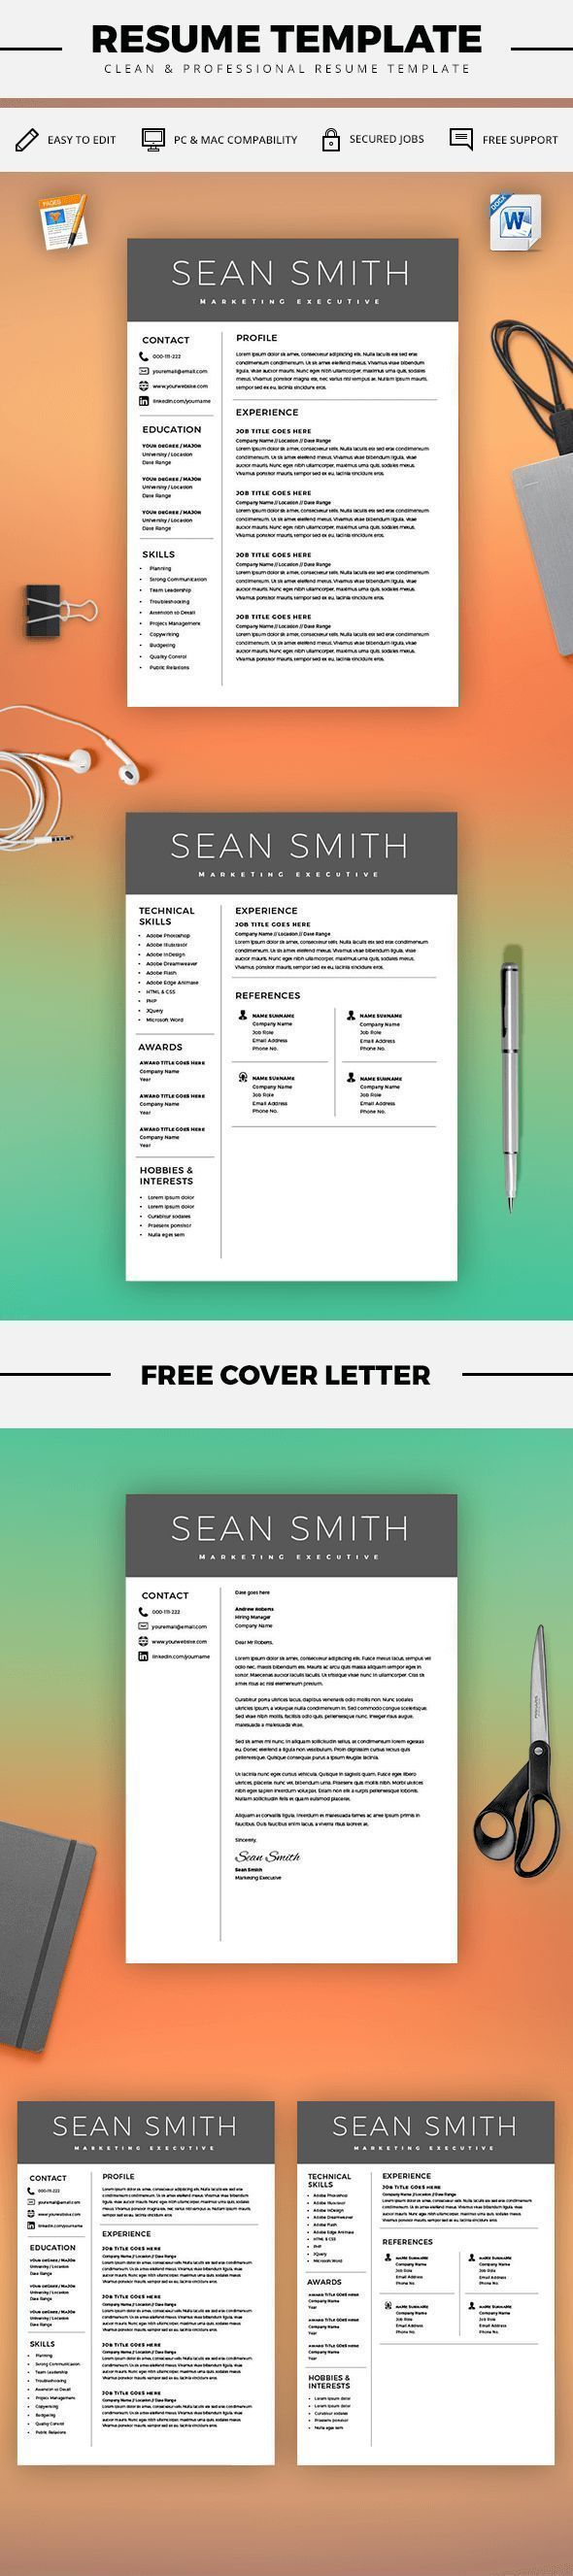 Curriculum Vitae Template - Professional Resume Template + Cover Letter - Microsoft Word Mac / PC - Resume Templates - Instant Download